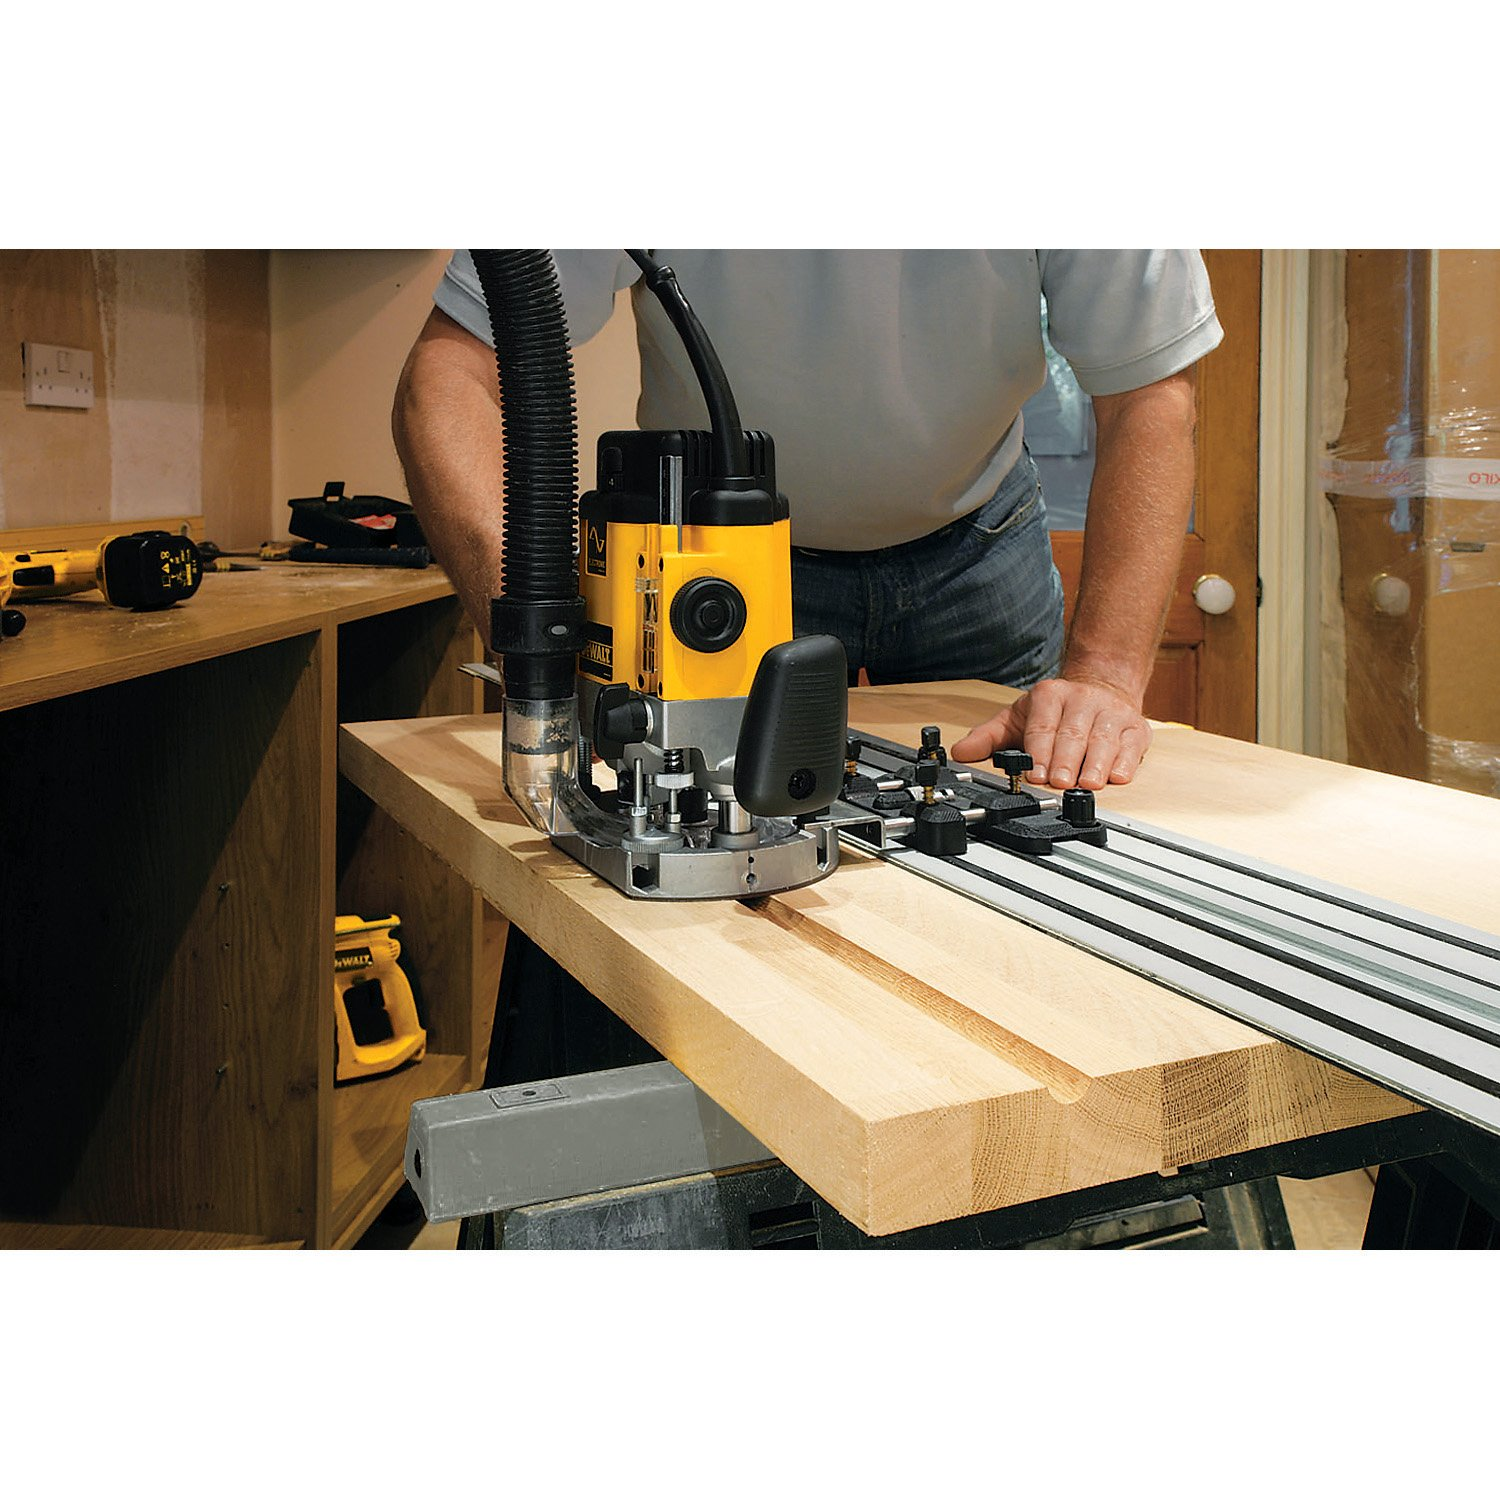 Dewalt dws5031 tracksaw router adapter track saw accessories dewalt dws5031 tracksaw router adapter track saw accessories amazon greentooth Images